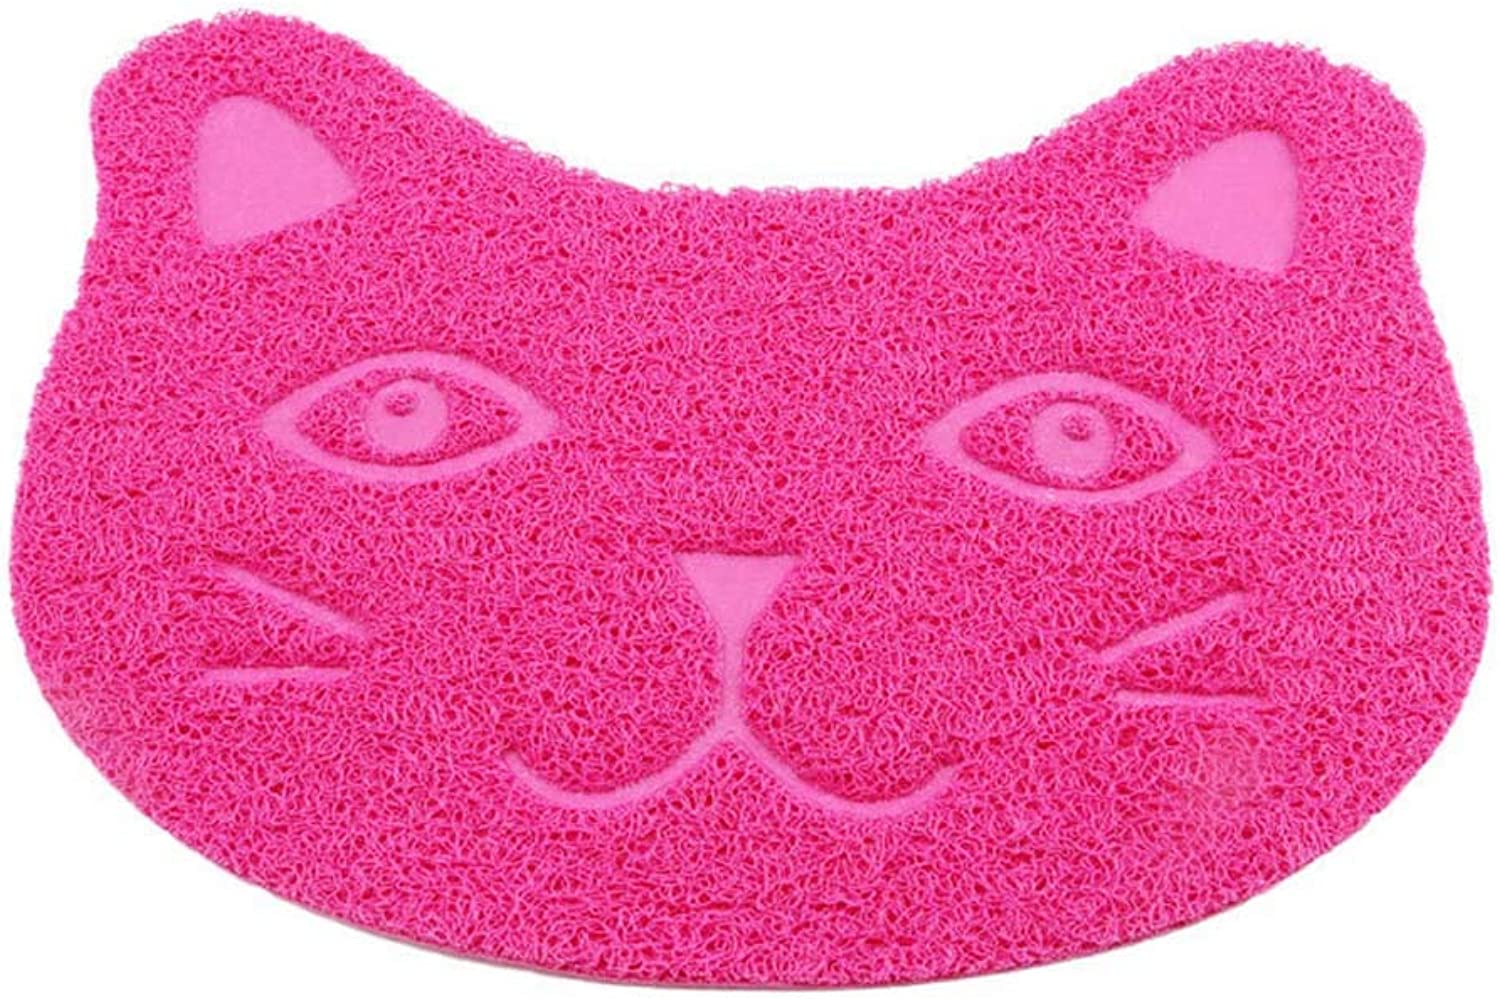 Cat Litter Mat,Pet Placemat, Kitty Litter Rug, Large Pad,Dog Feeding Mat,Doormat, Washable PVC NonSlip Easy Clean Predect Floor Cat Face2